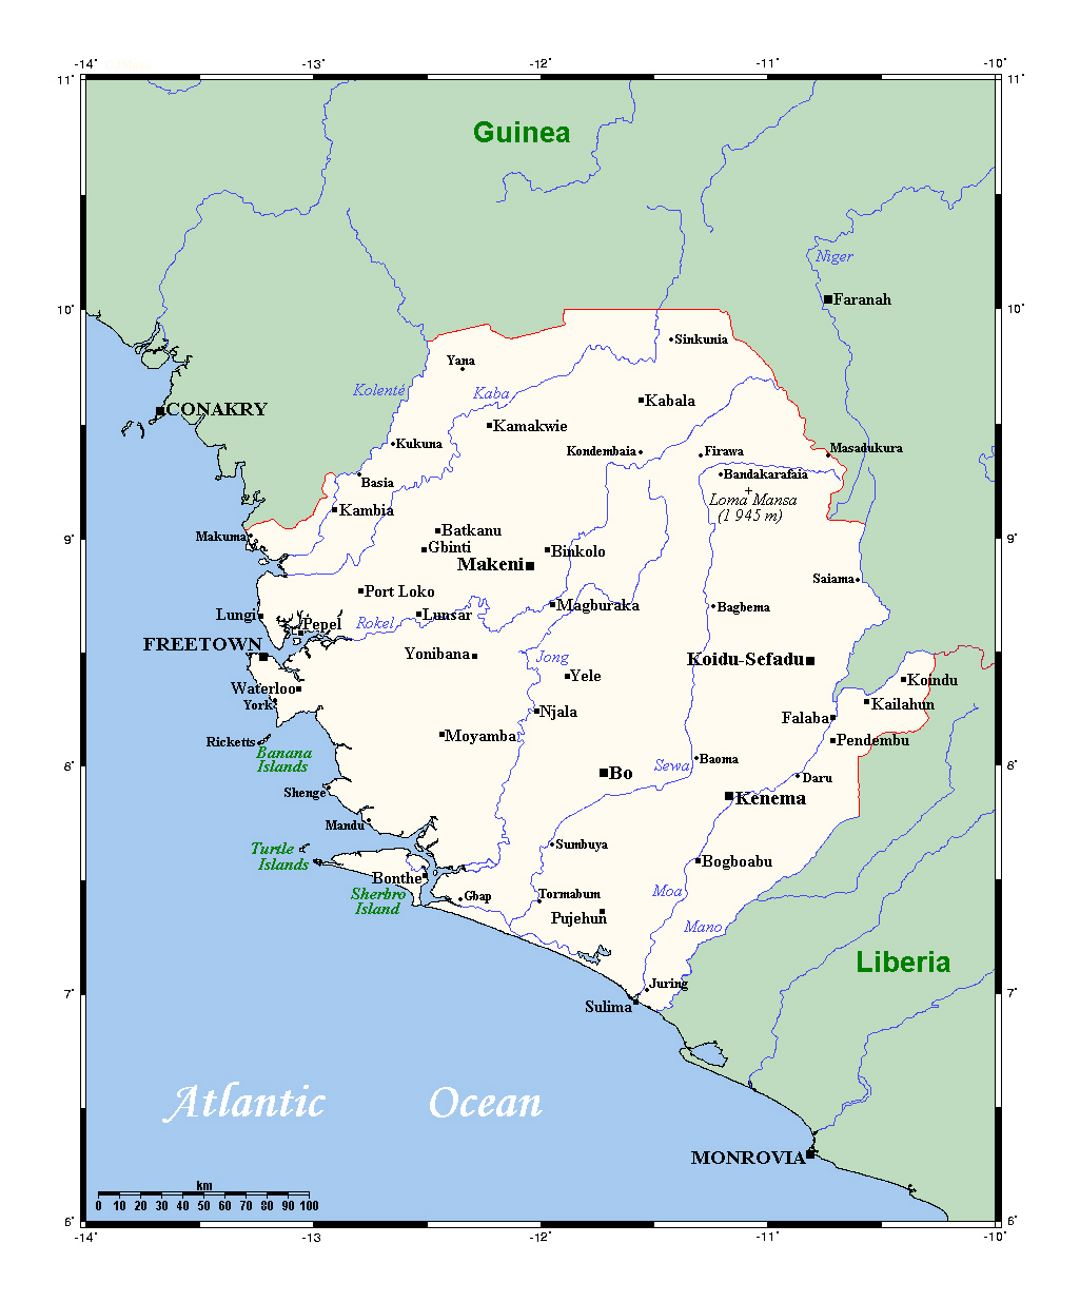 Detailed map of Sierra Leone with all cities